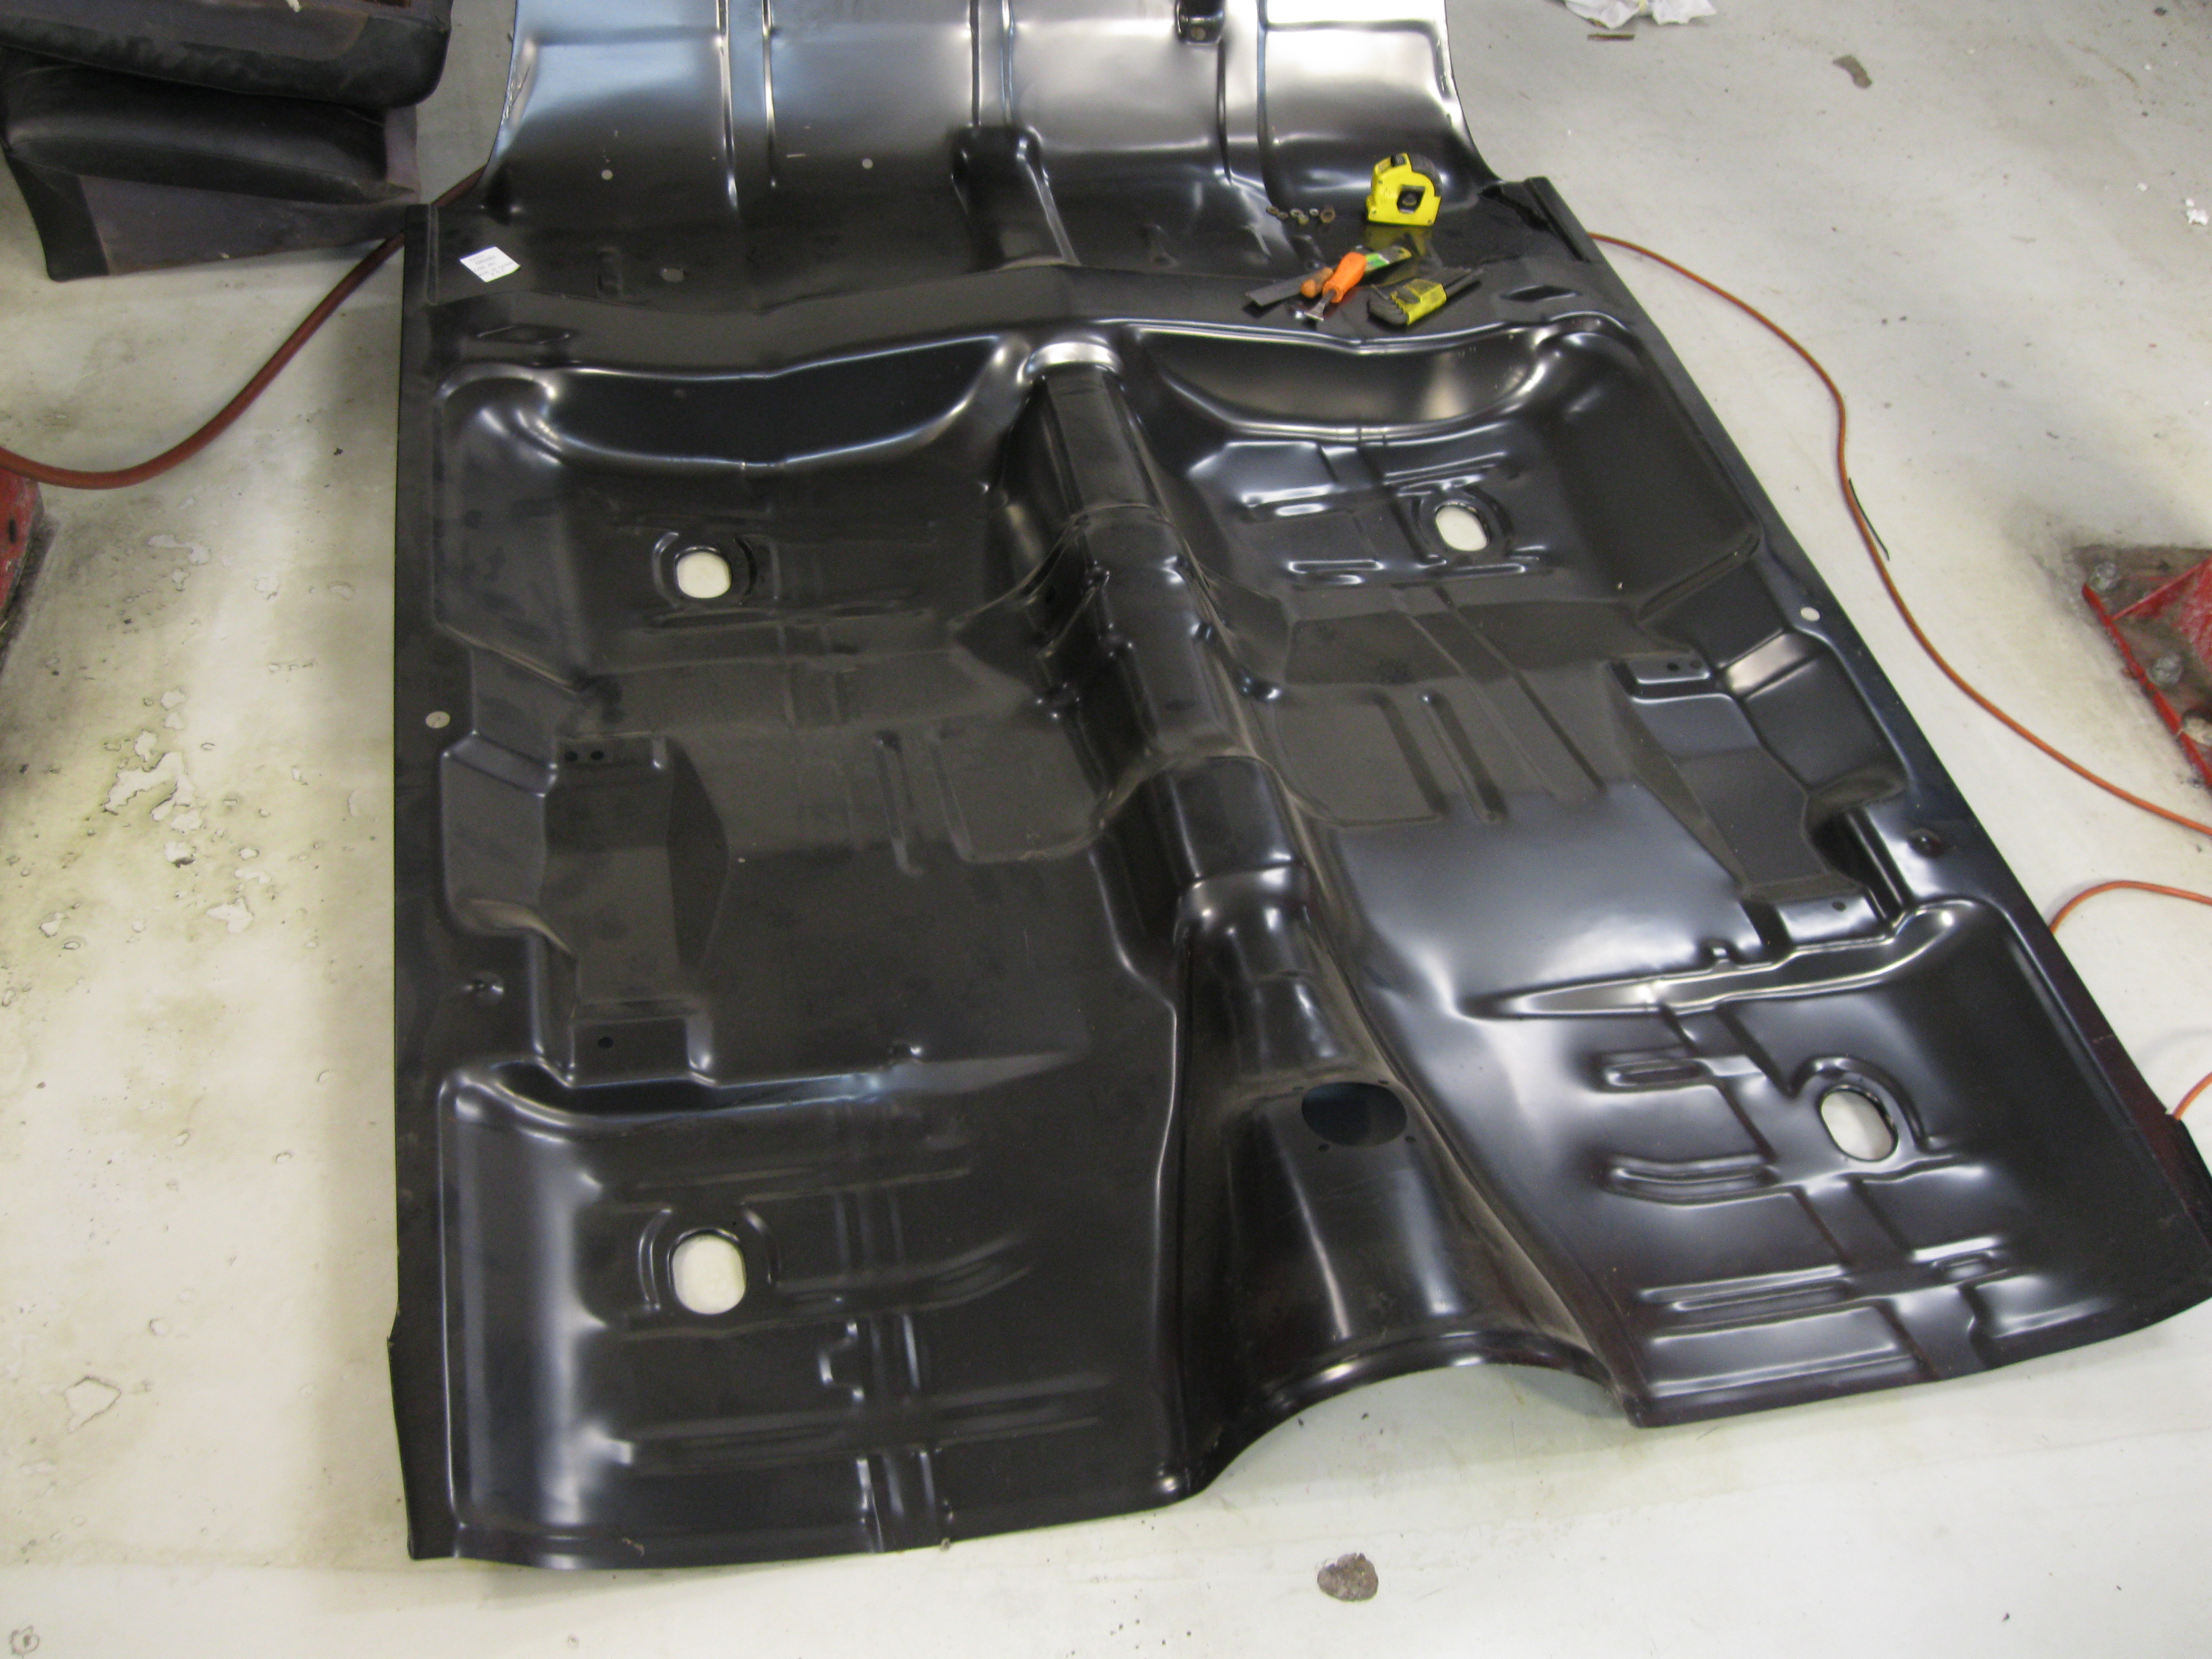 Floor Replacement for a '67 Chevelle - Wilson's Auto